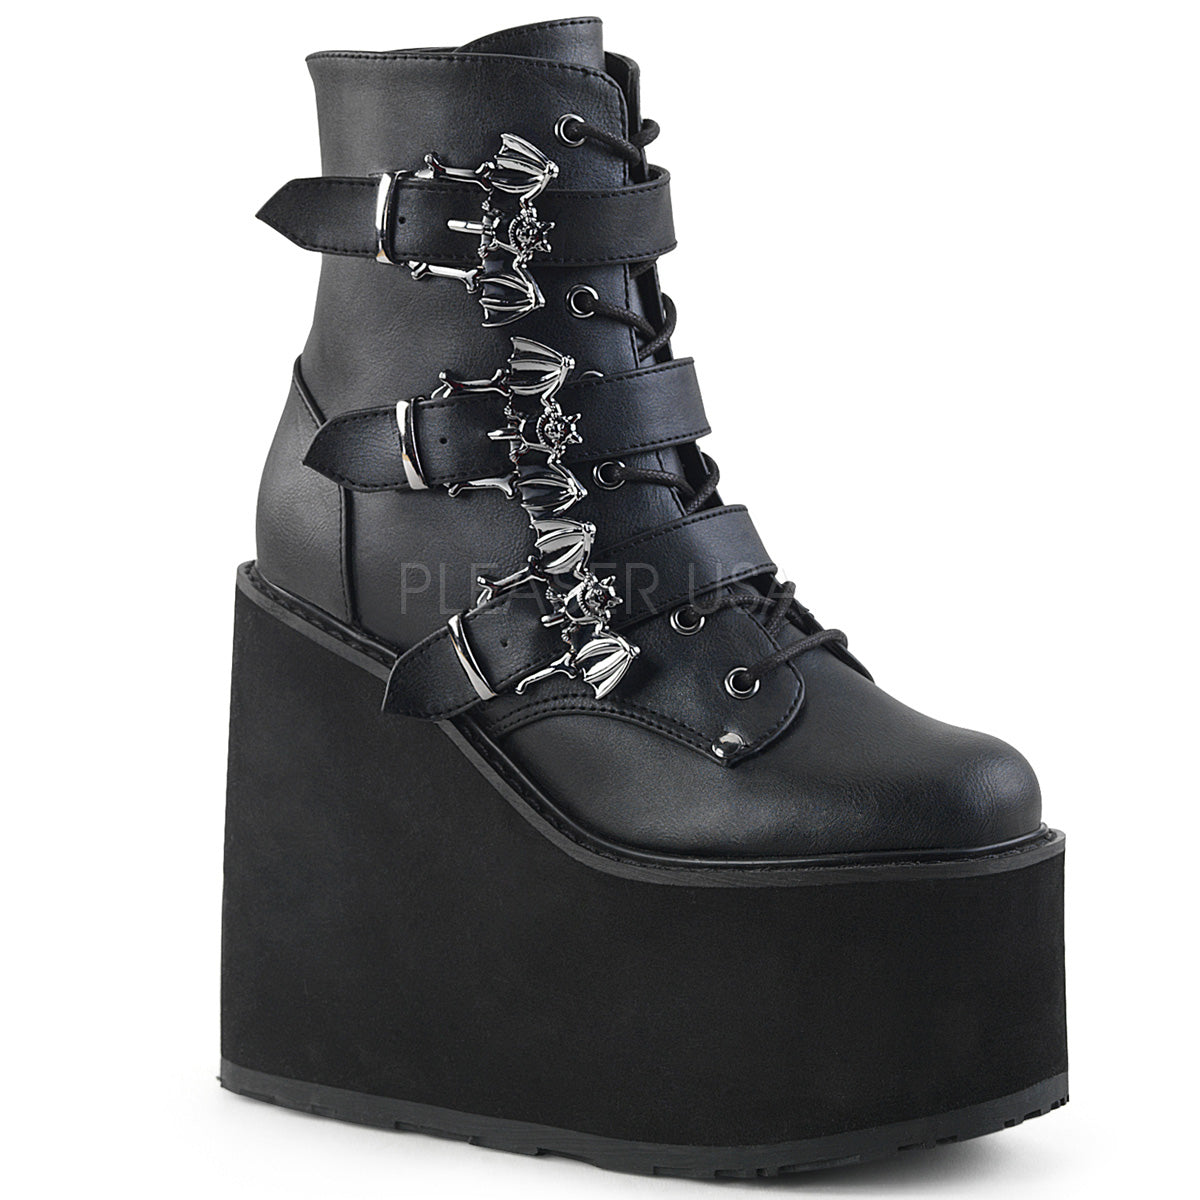 "Demonia SWING-103 Black 5 1/2""(140mm) Wedge Platform Lace-Up Front Ankle Boot Featuring Triple Bat Buckle Straps, Metal Inside Zip Closure"